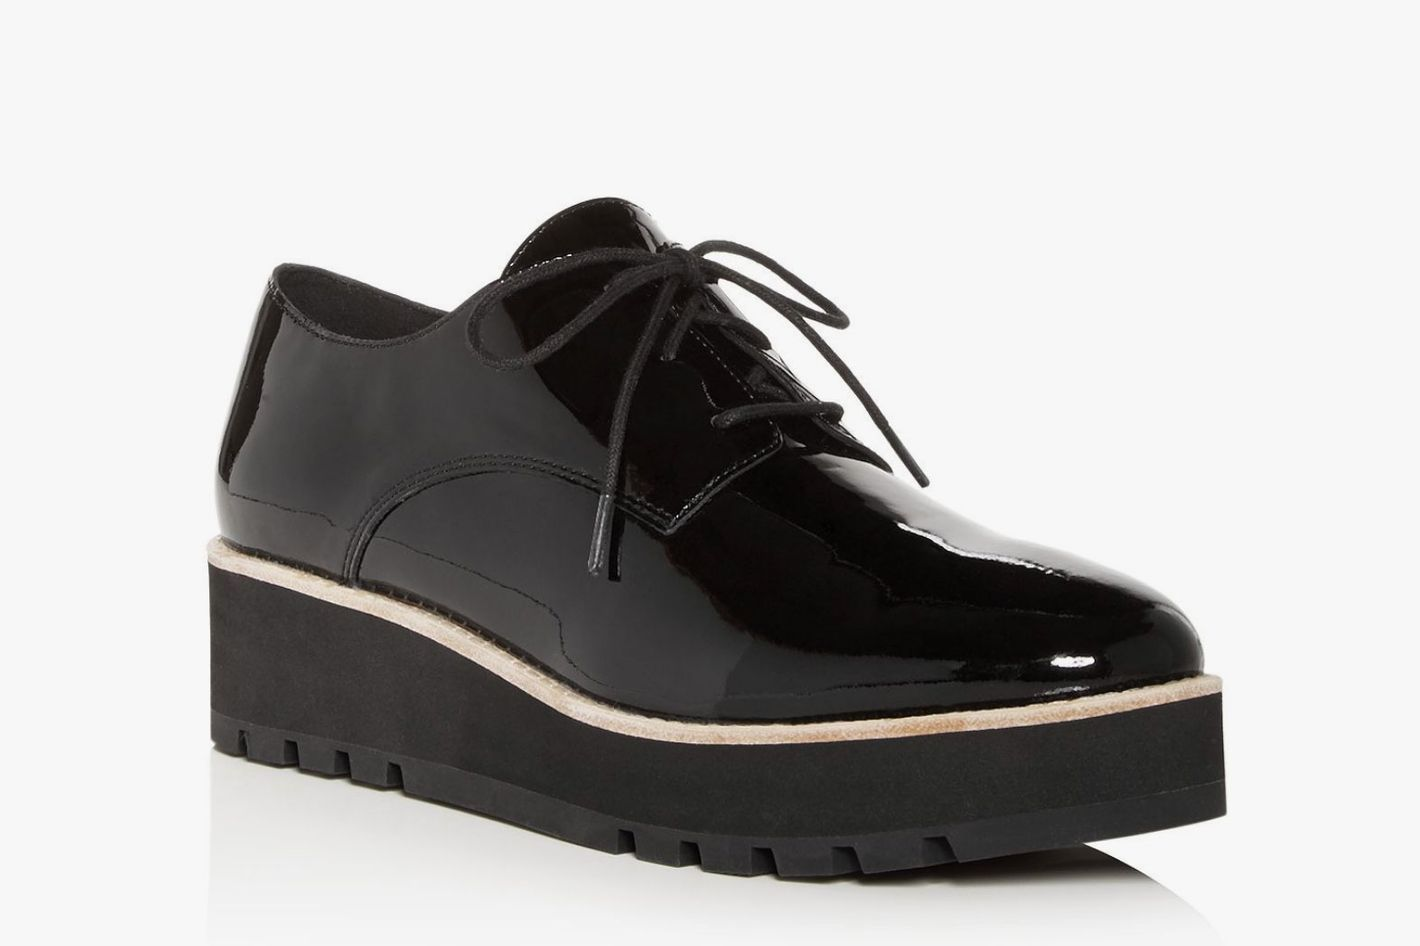 Eileen Fisher Women's Eddy Patent-Leather Plain-Toe Platform Loafers